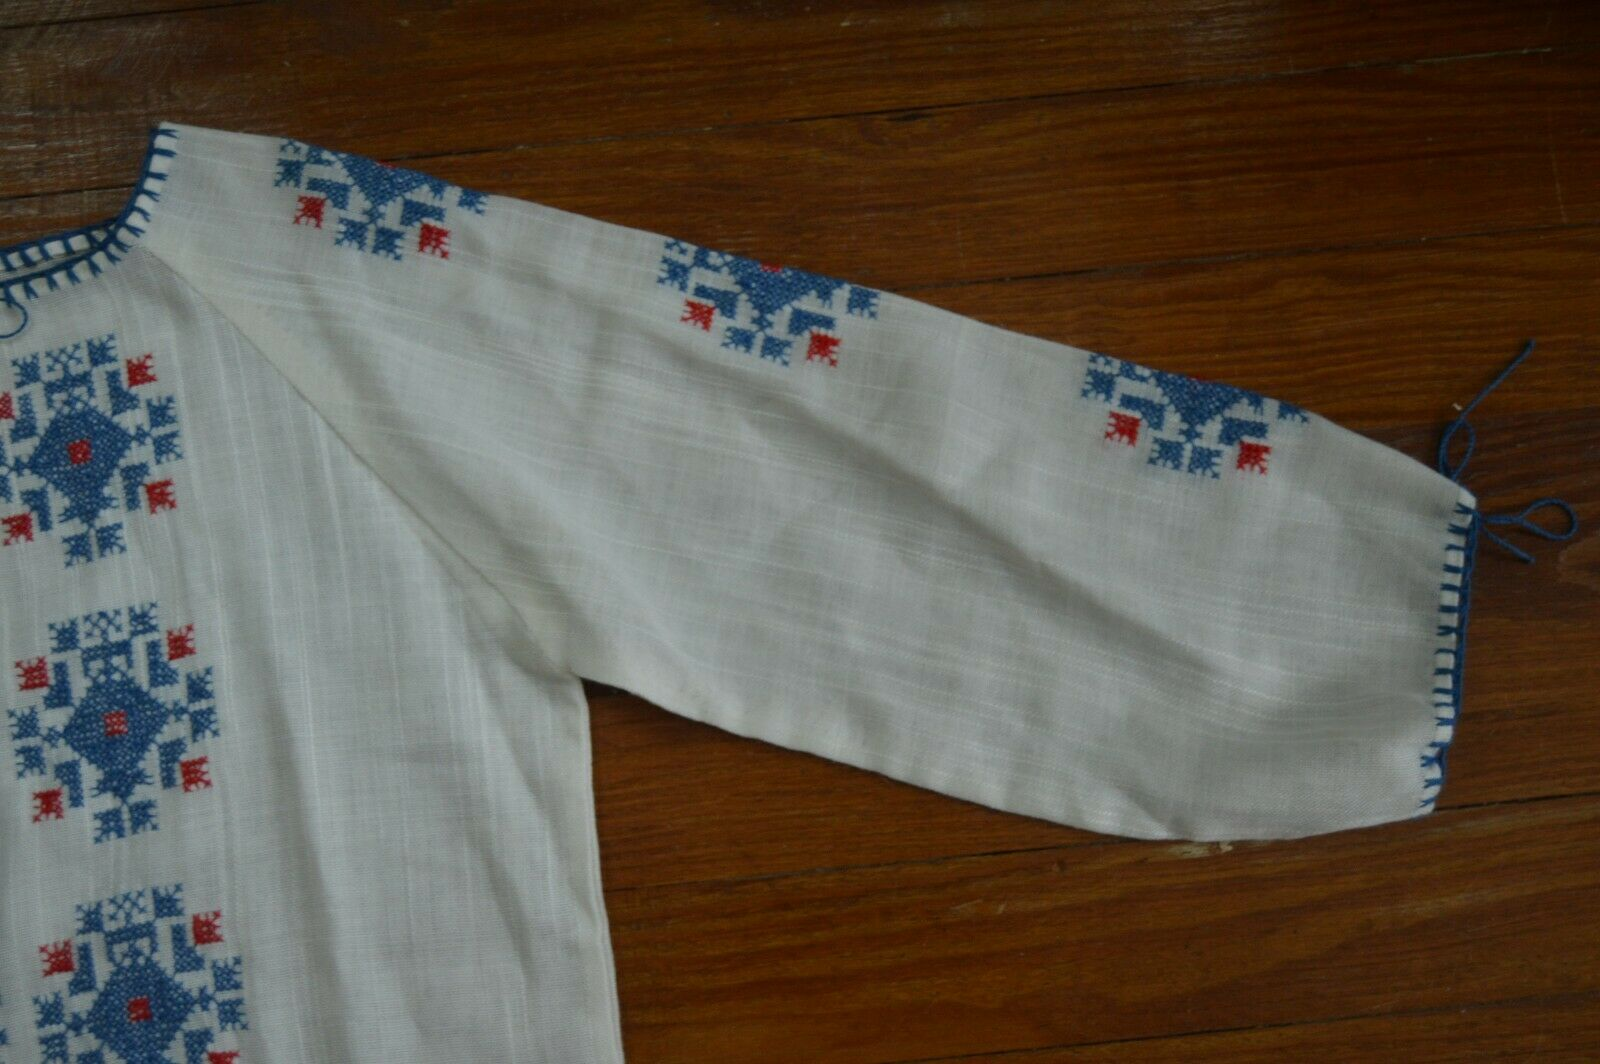 Vintage 1930's Hungarian Cotton Embroidered Blouse - image 7